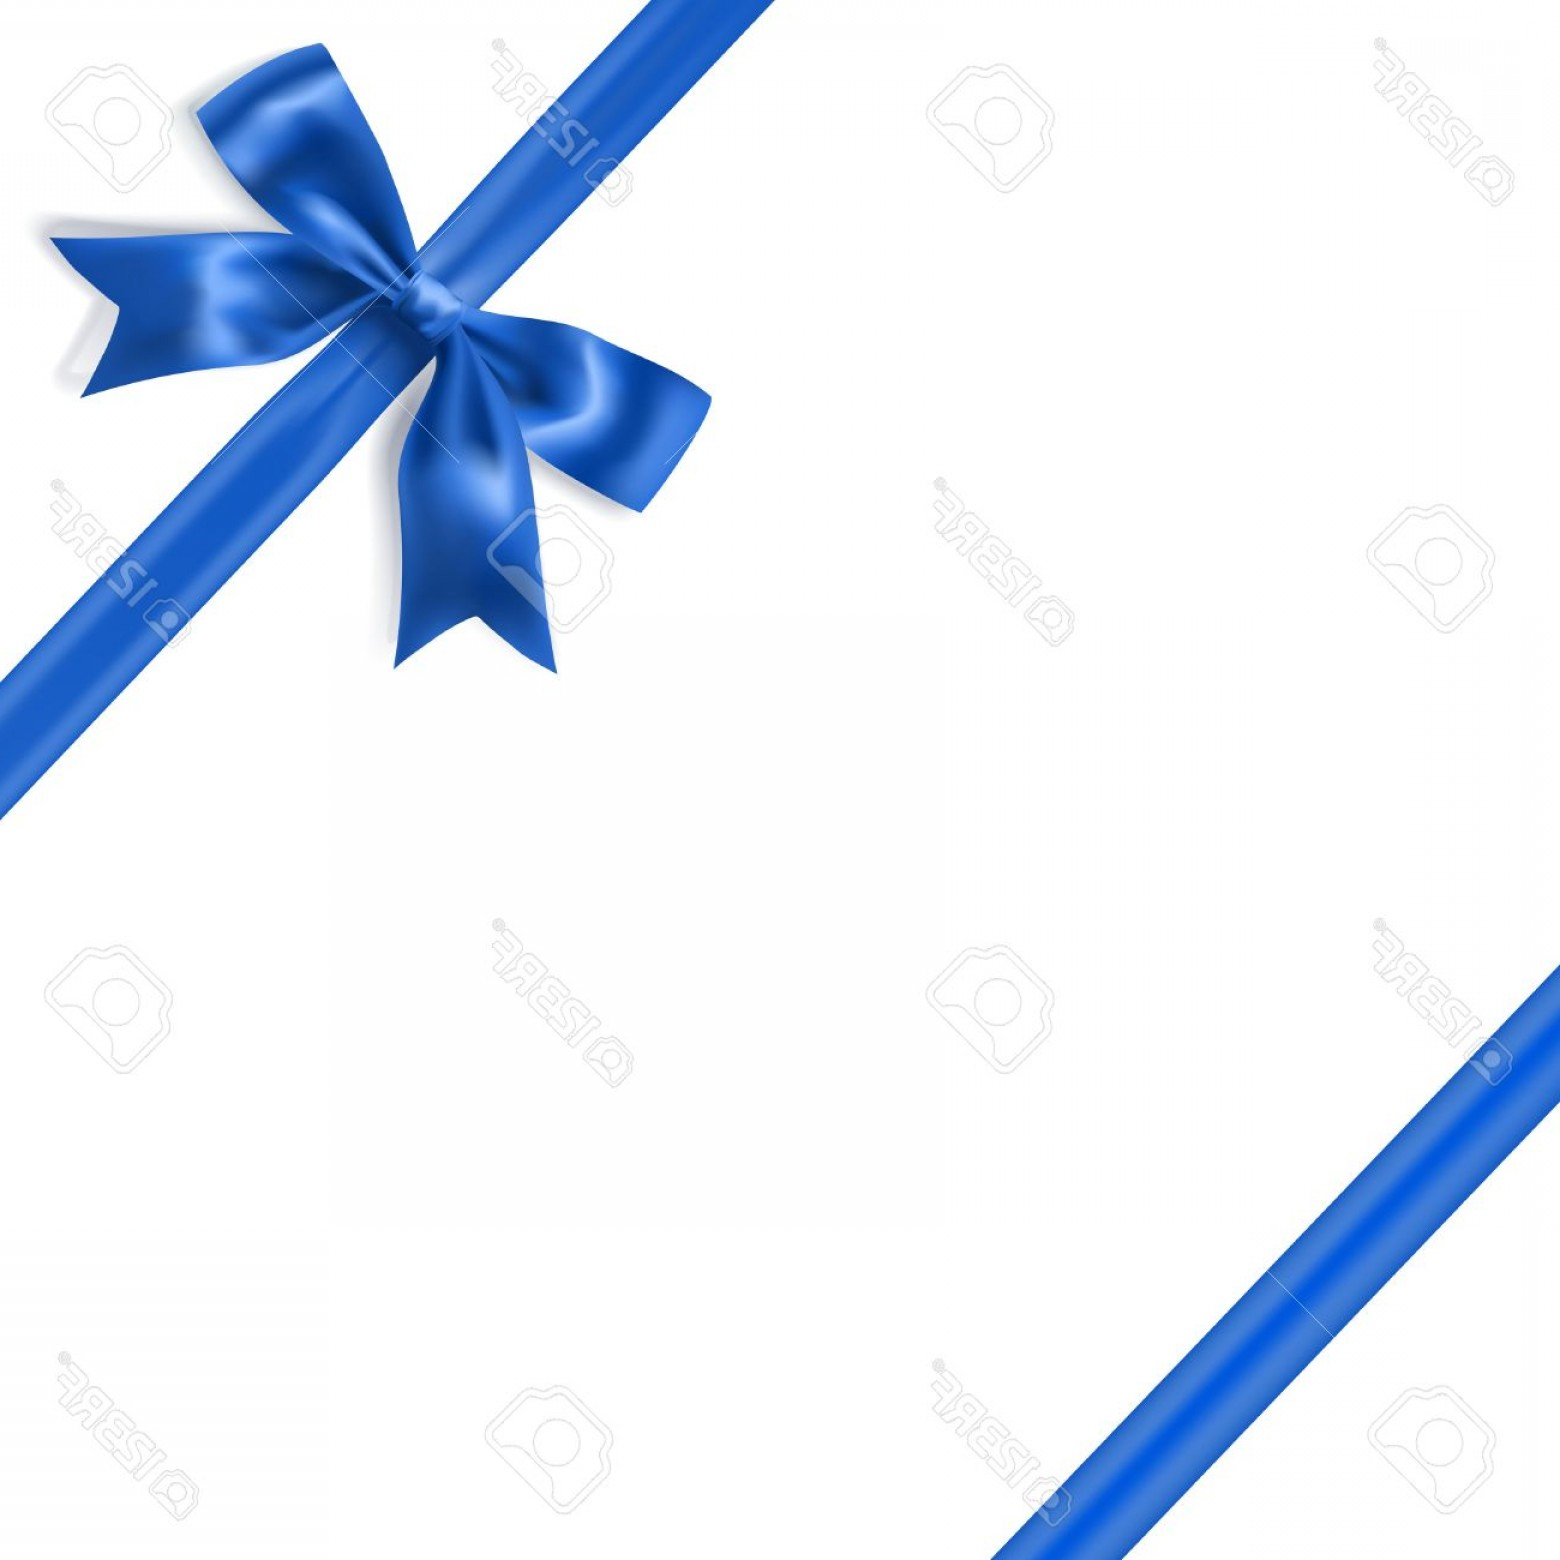 Blue With White Background Vector: Photostock Vector Royal Blue Silky Bow And Ribbon Corner On White Background Vector